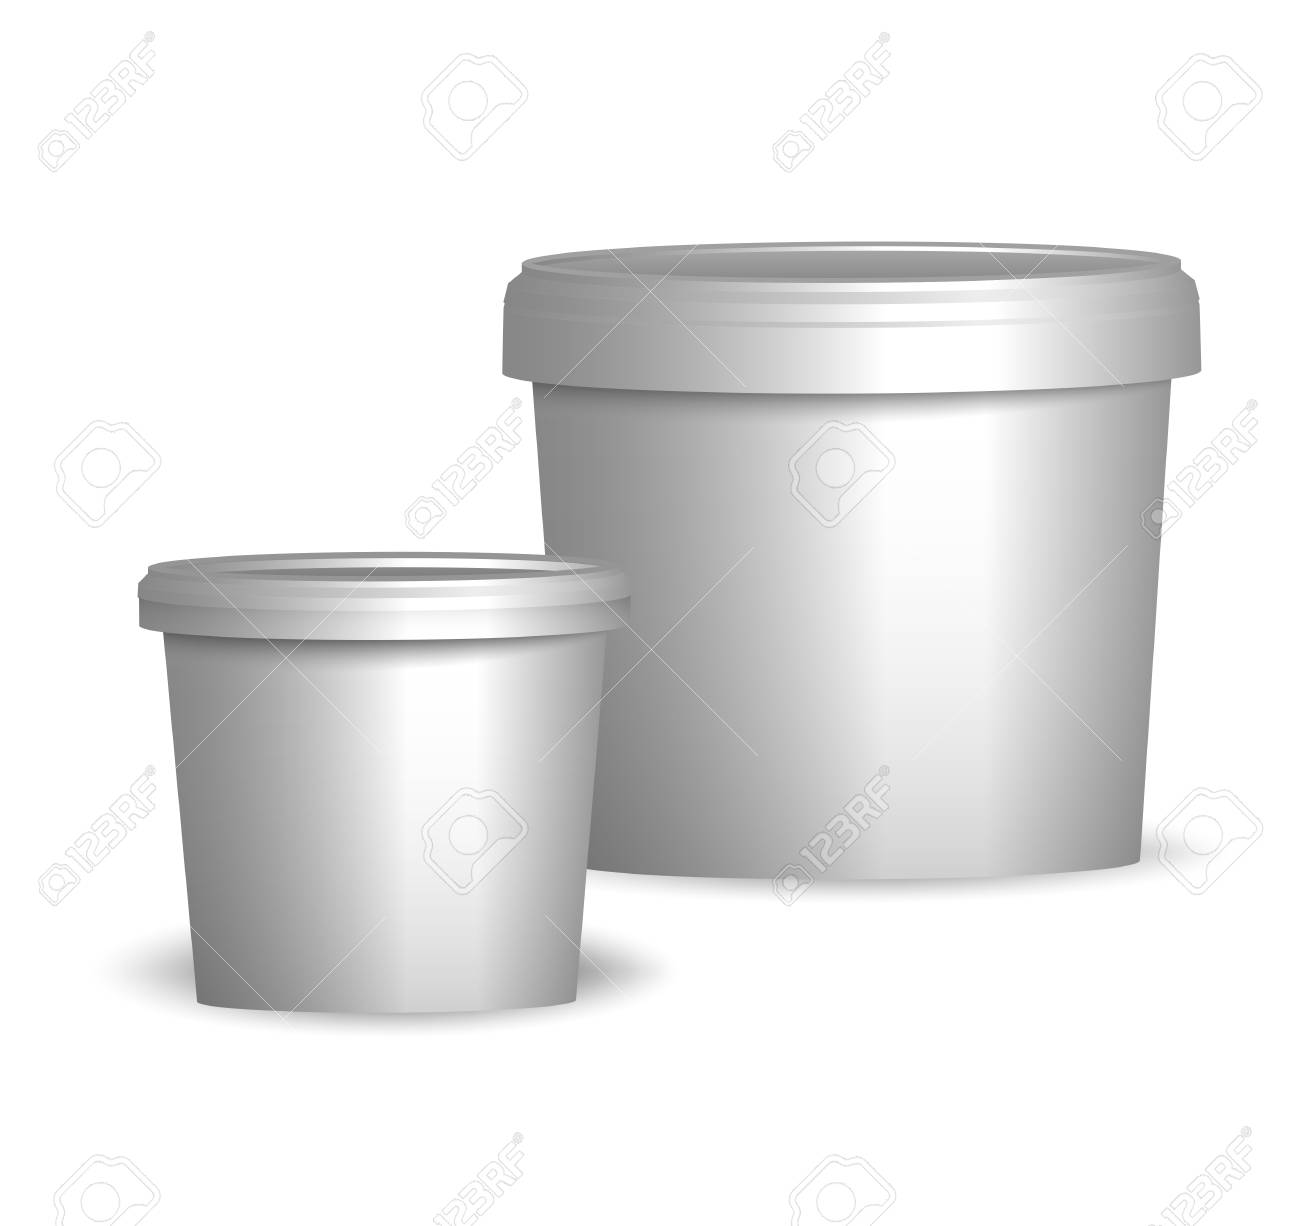 Bucket Template | Mock Up Template Ready Design White Plastic Tub Bucket Container